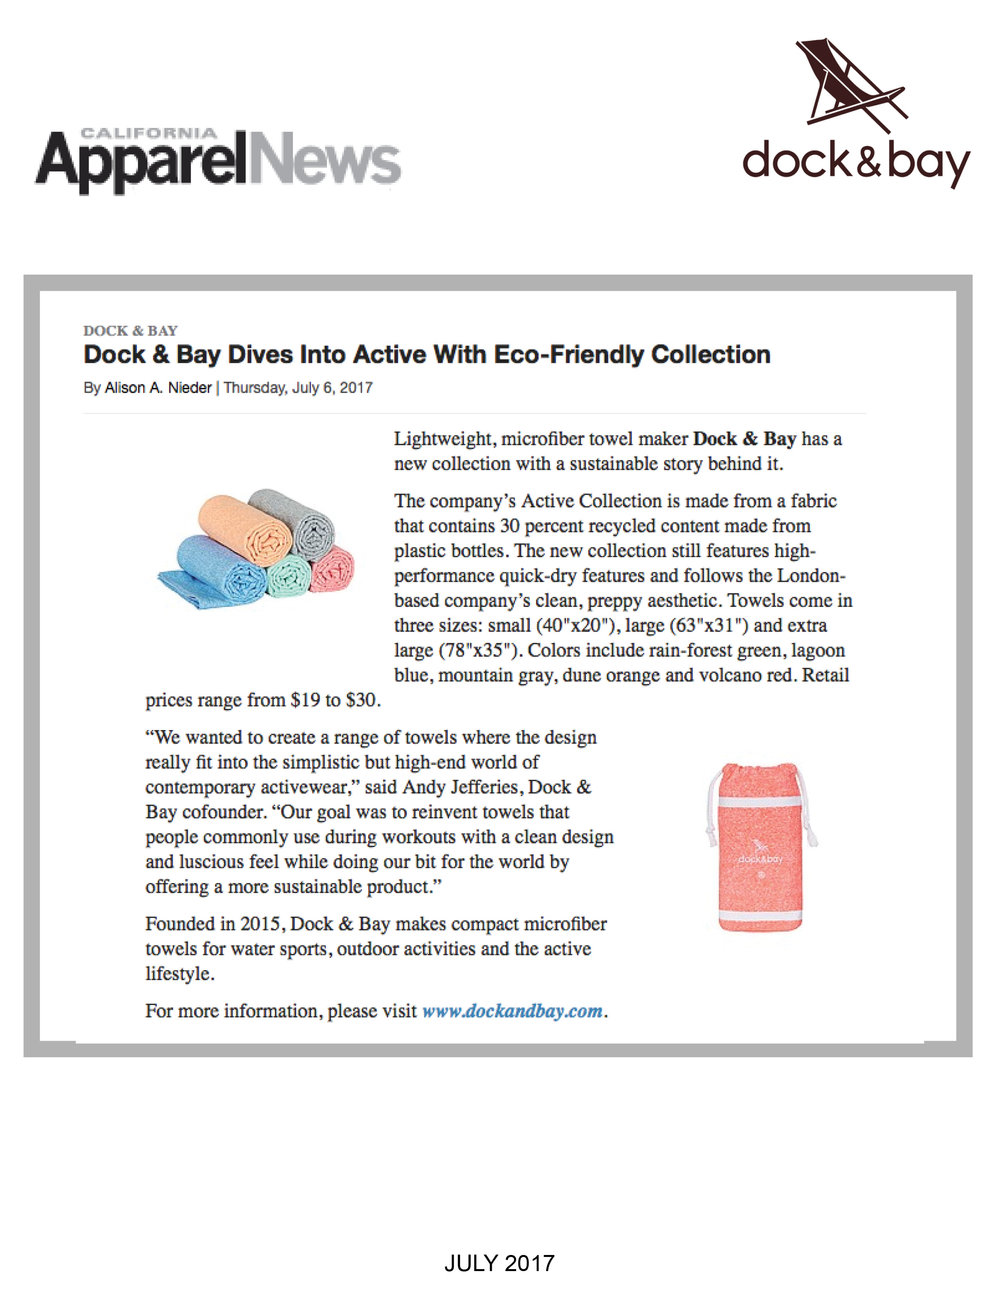 Dock&Bay_ApparelNews_July2017.jpg